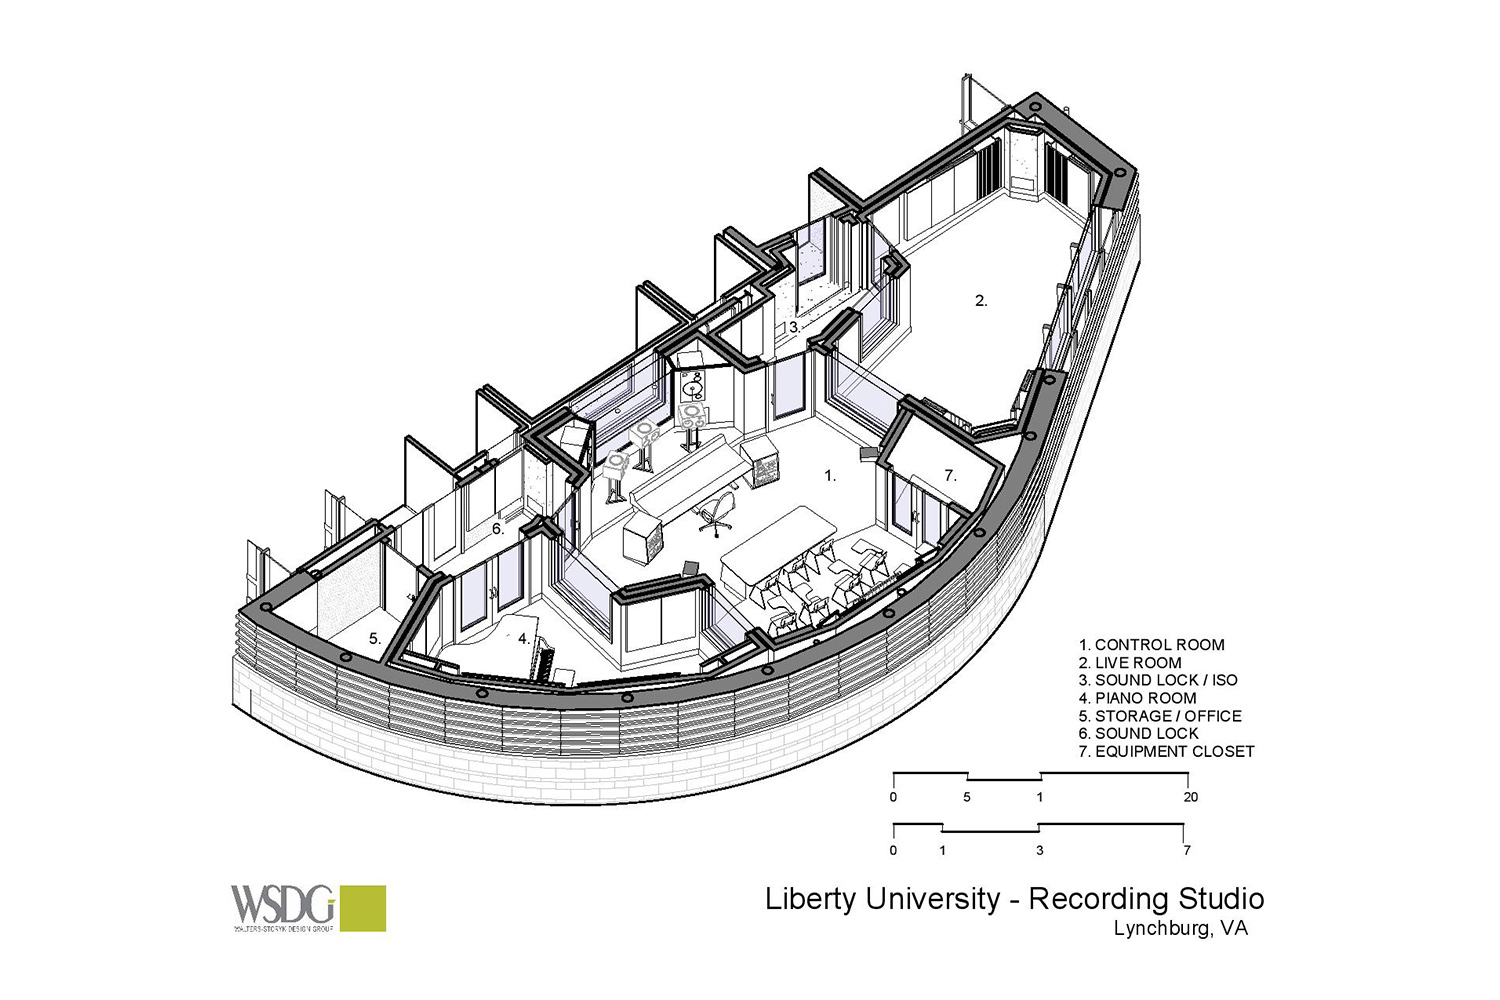 WSDG has designed a state-of-the art recording /teaching studio for the expanding campus of Liberty University, America's largest private, non-profit Christian university. Presentation Drawing/Axo View 2.